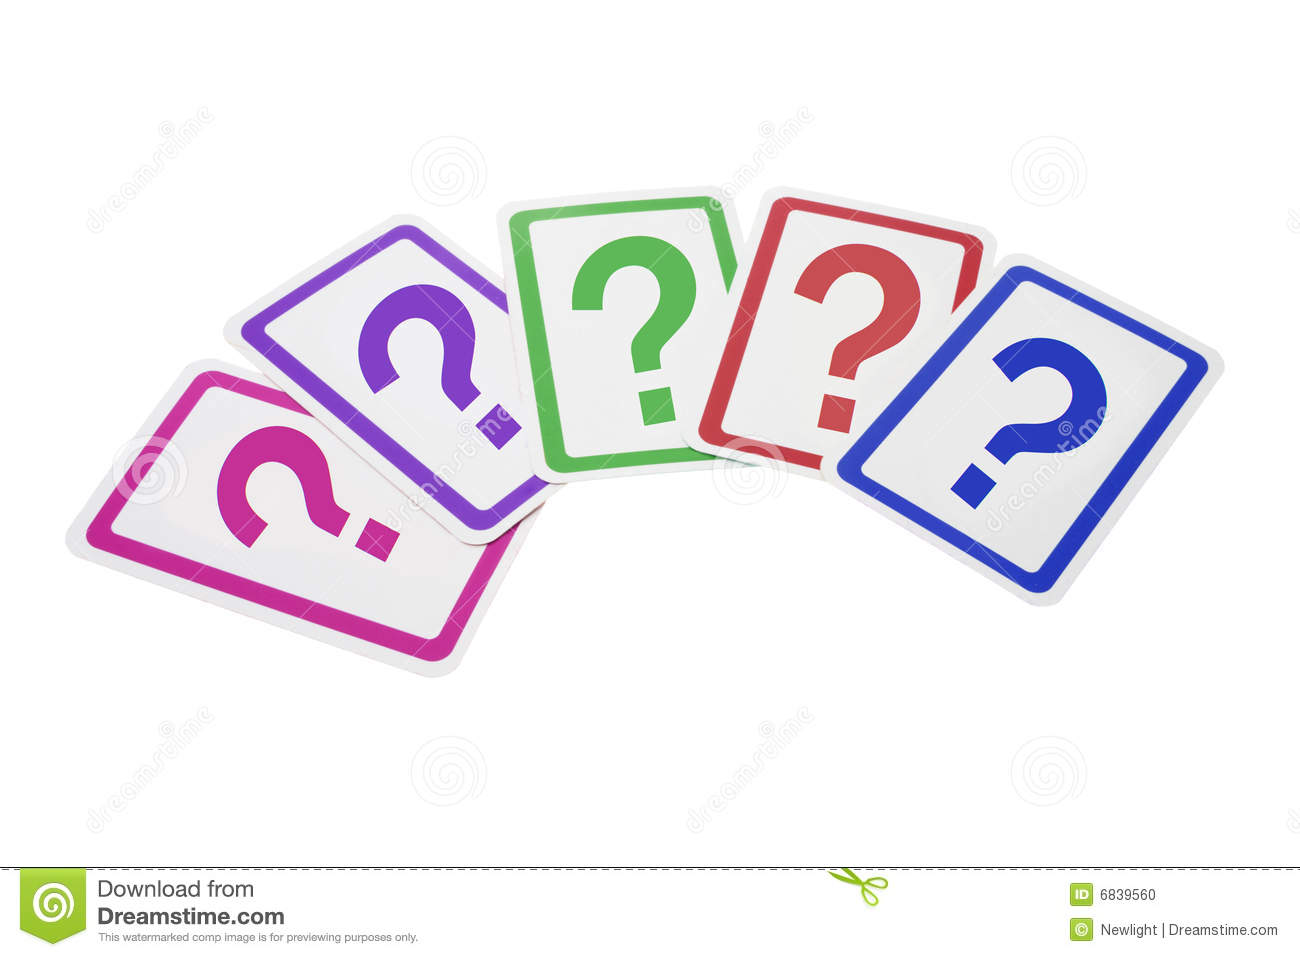 Question Mark Cards on Isolated White Background.